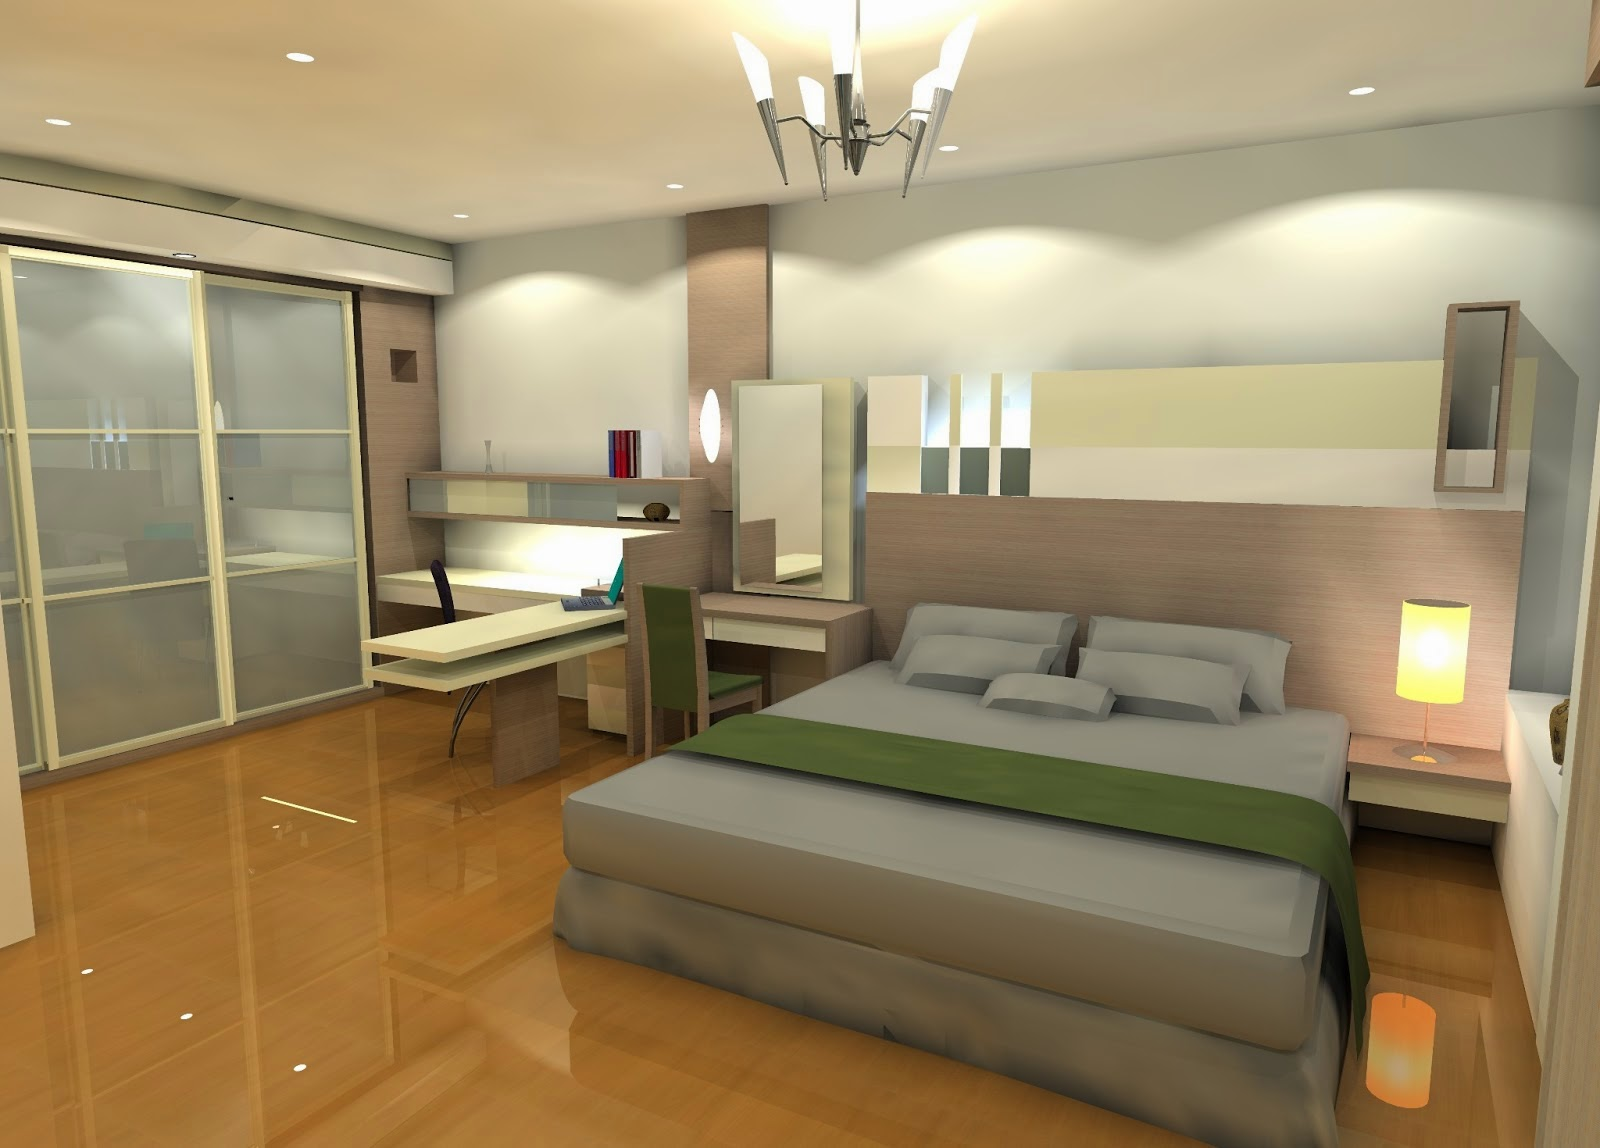 Modern bedroom interior design 2015 exclusive home for Bedroom decoration 2015